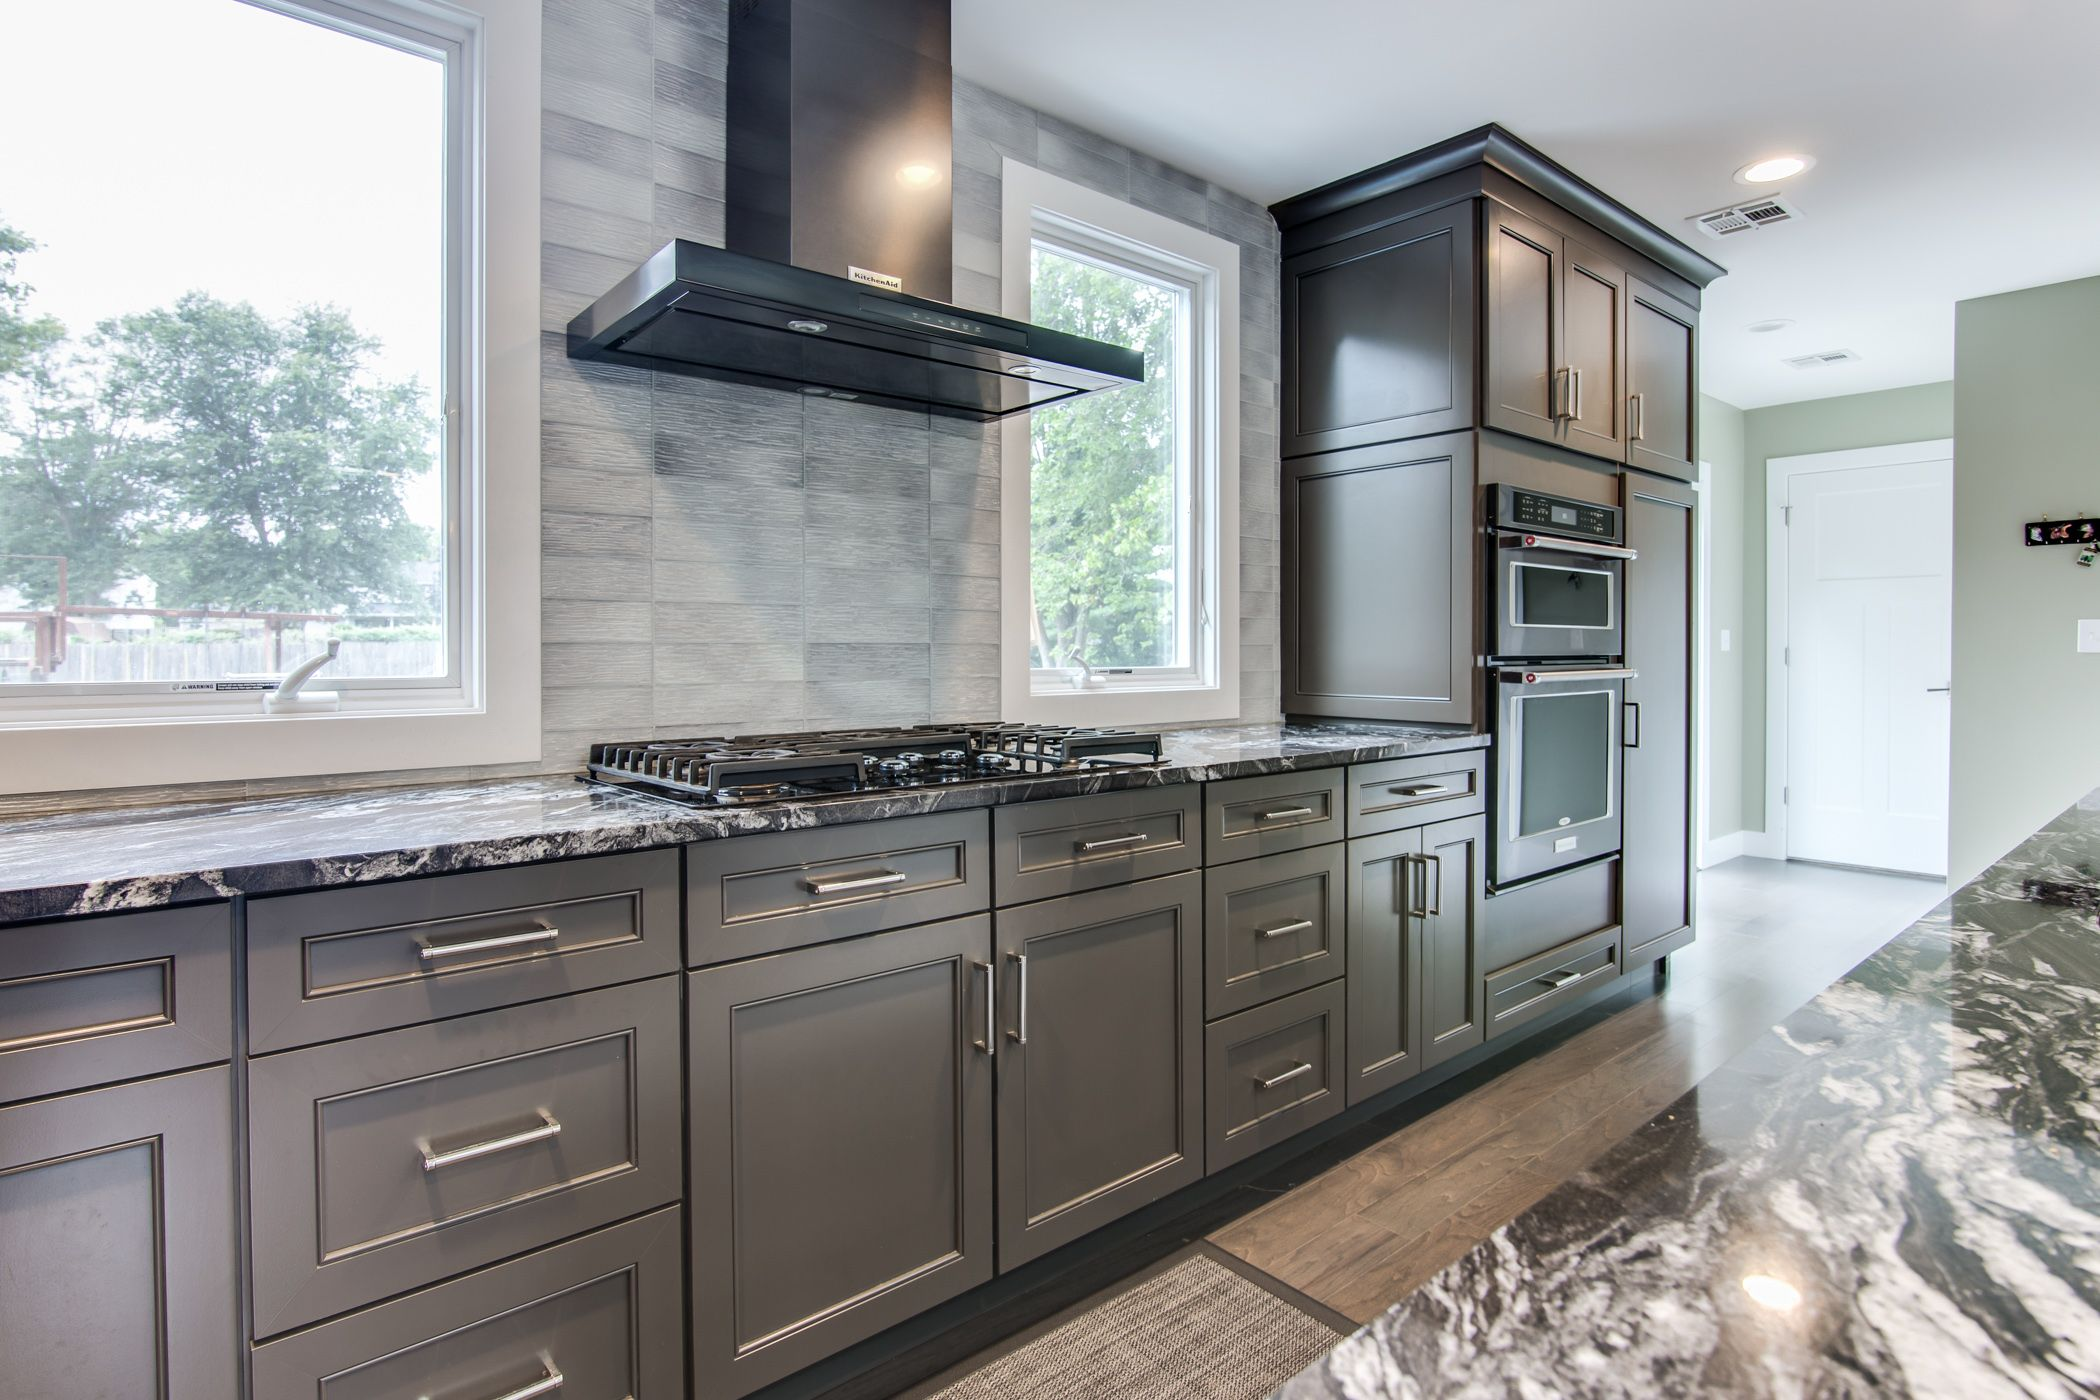 Black Stainless Steel Kitchenaid Rangehood In Between Windows In A